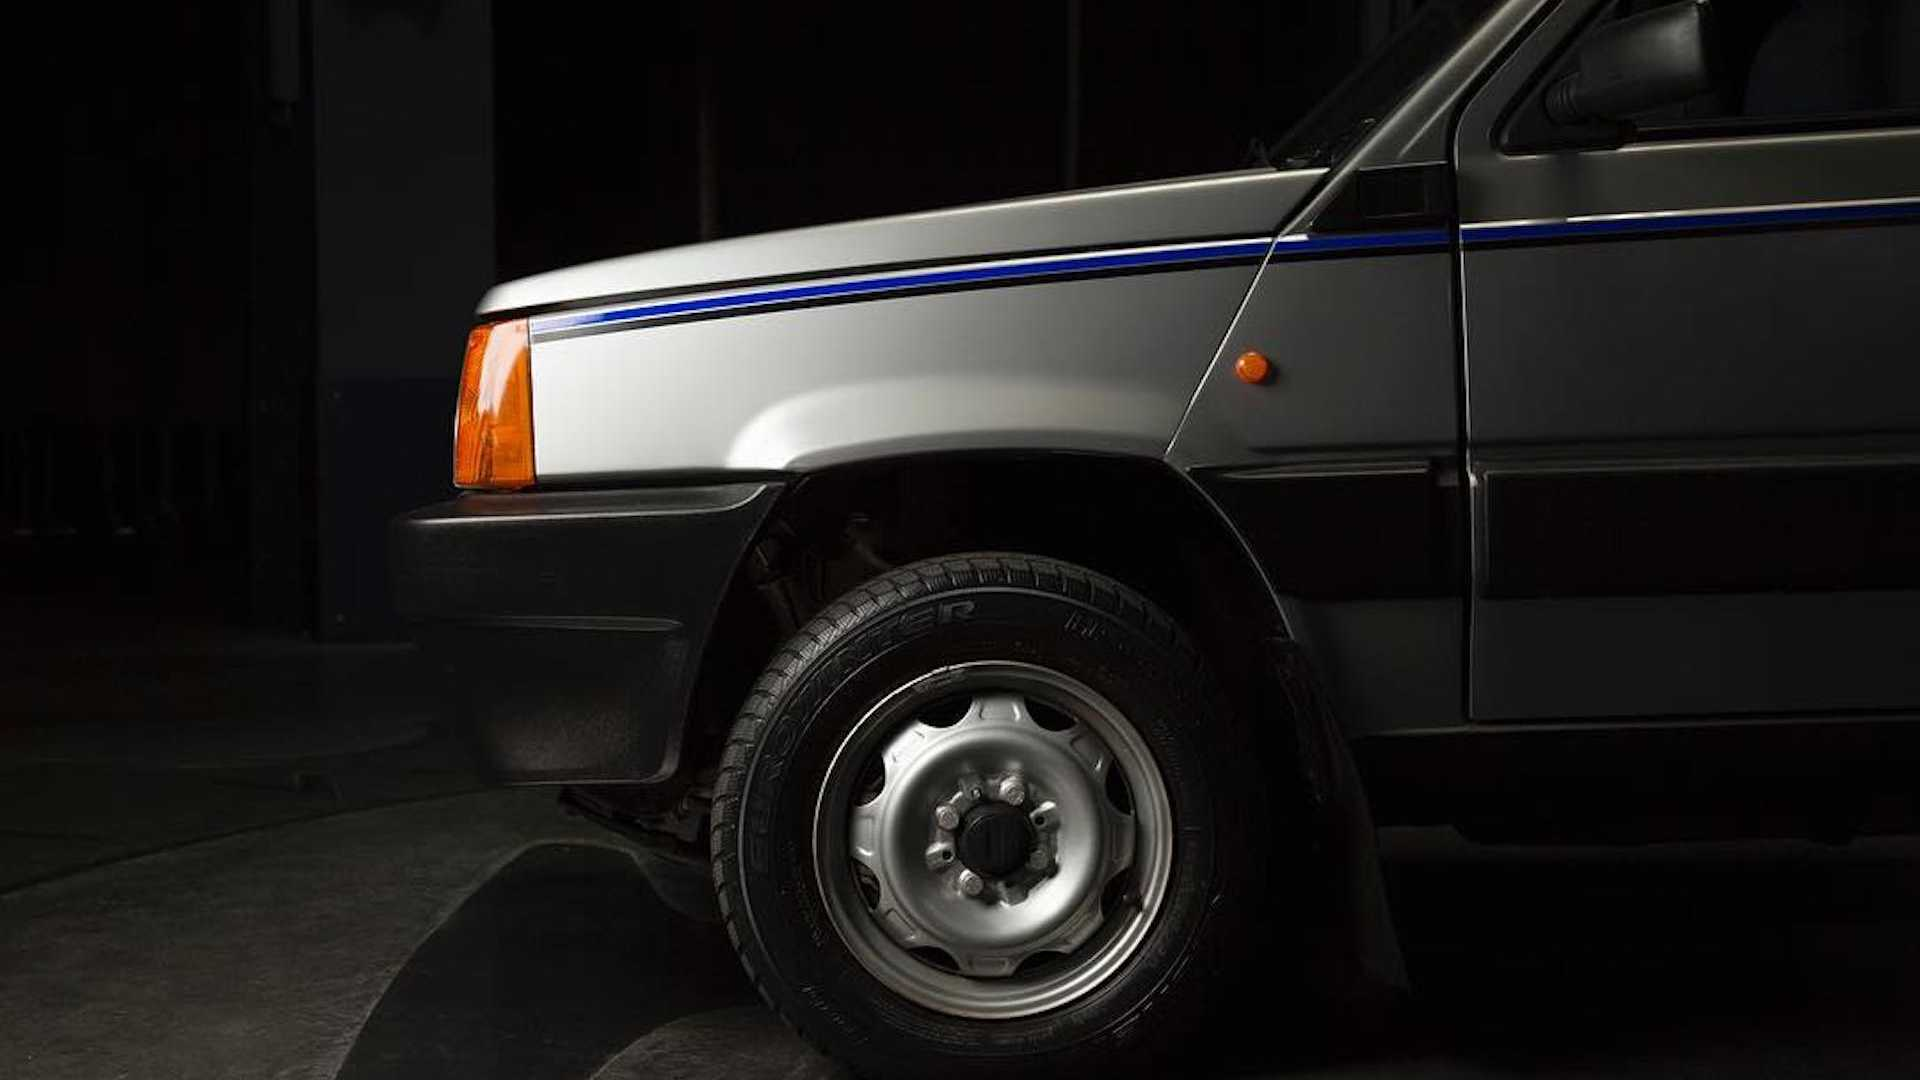 Fiat Panda 4x4 restored by Garage Italia Customs (3)